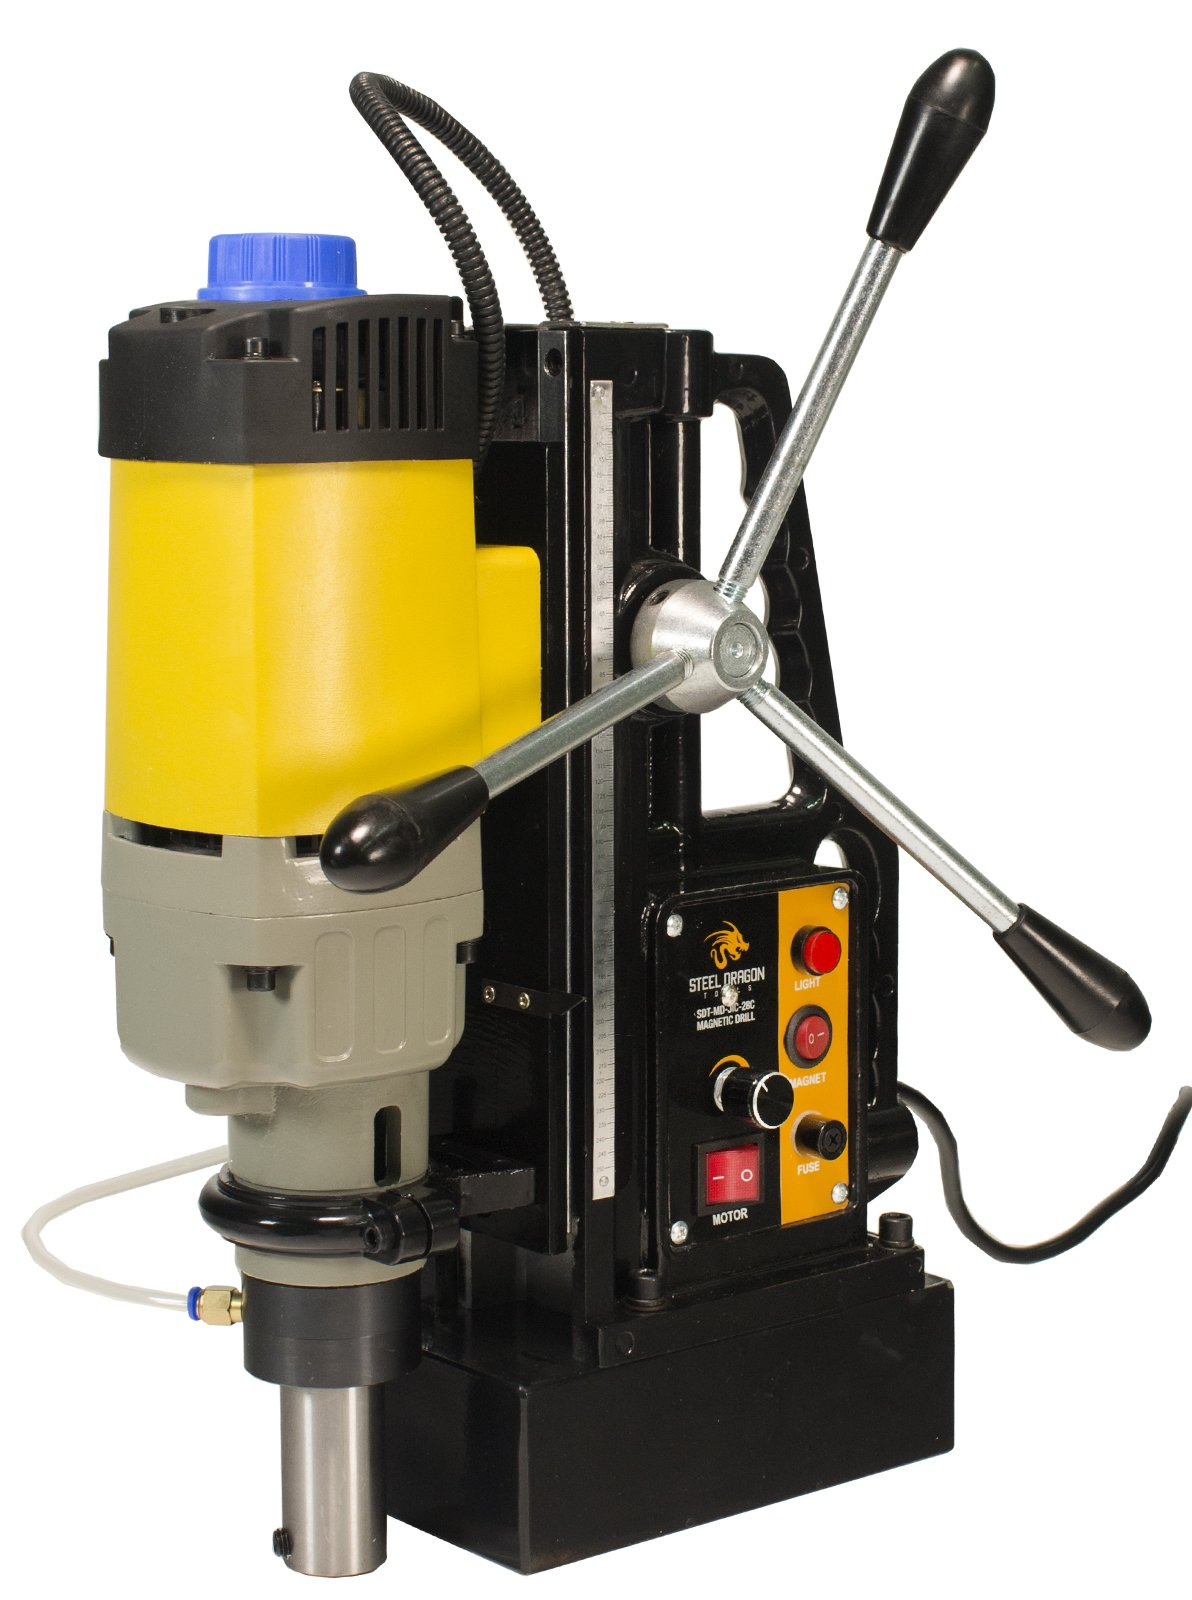 Steel Dragon Tools MD50 Magnetic Drill Press with 2'' Boring Diameter and 2,900 LBS Magnetic Force by Steel Dragon Tools (Image #1)